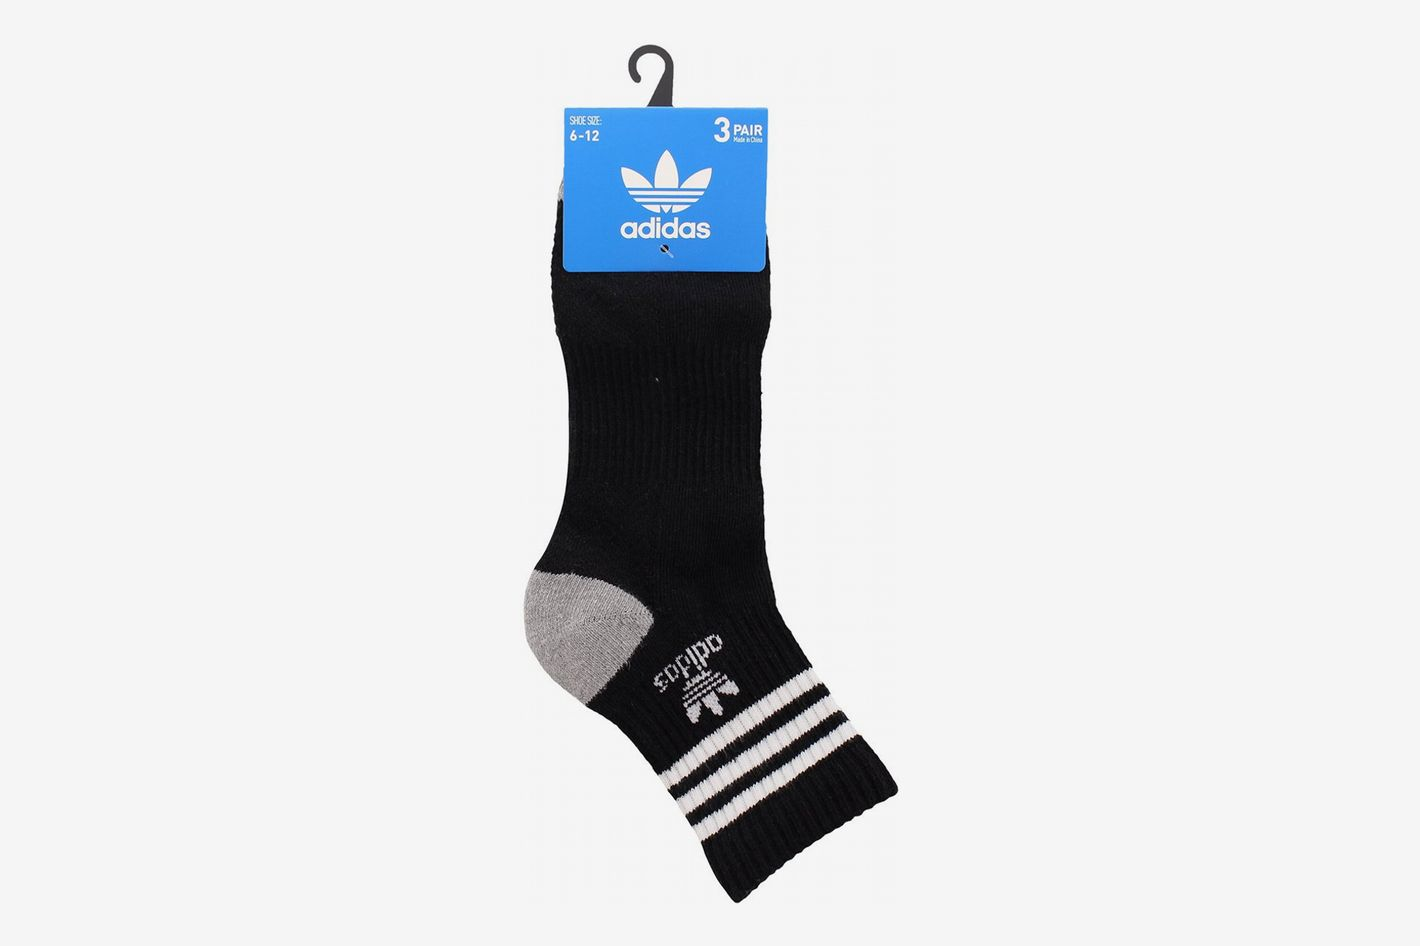 Adidas Men's Originals Cushioned High Quarter Socks